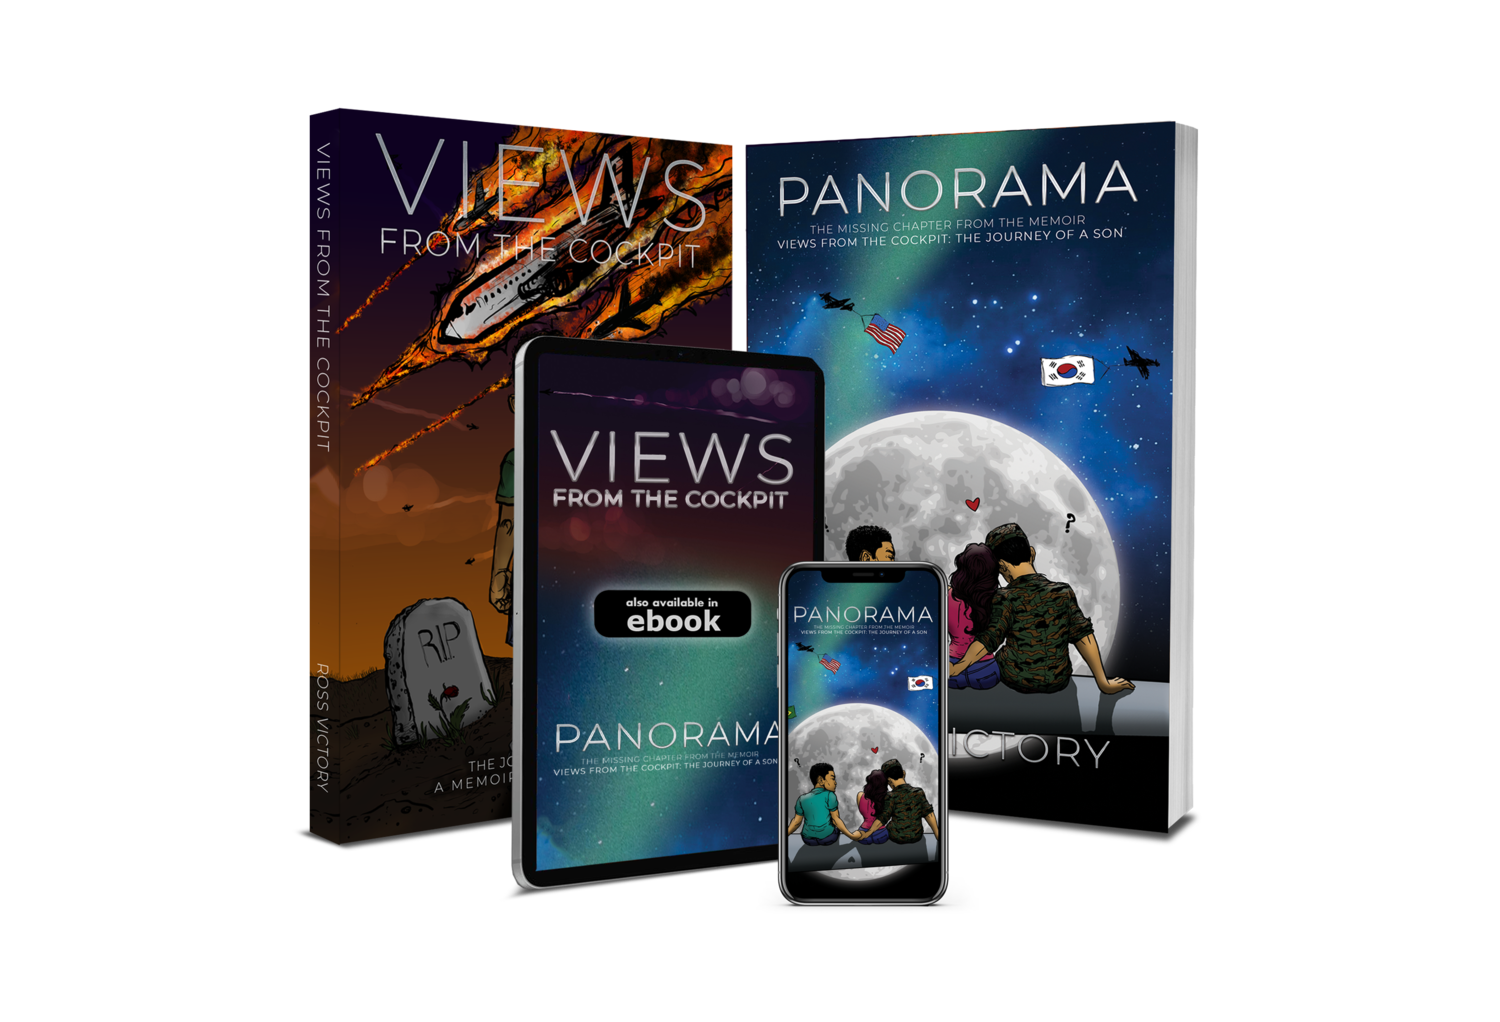 Views from the Cockpit + Panorama 2-book set (signed with note)